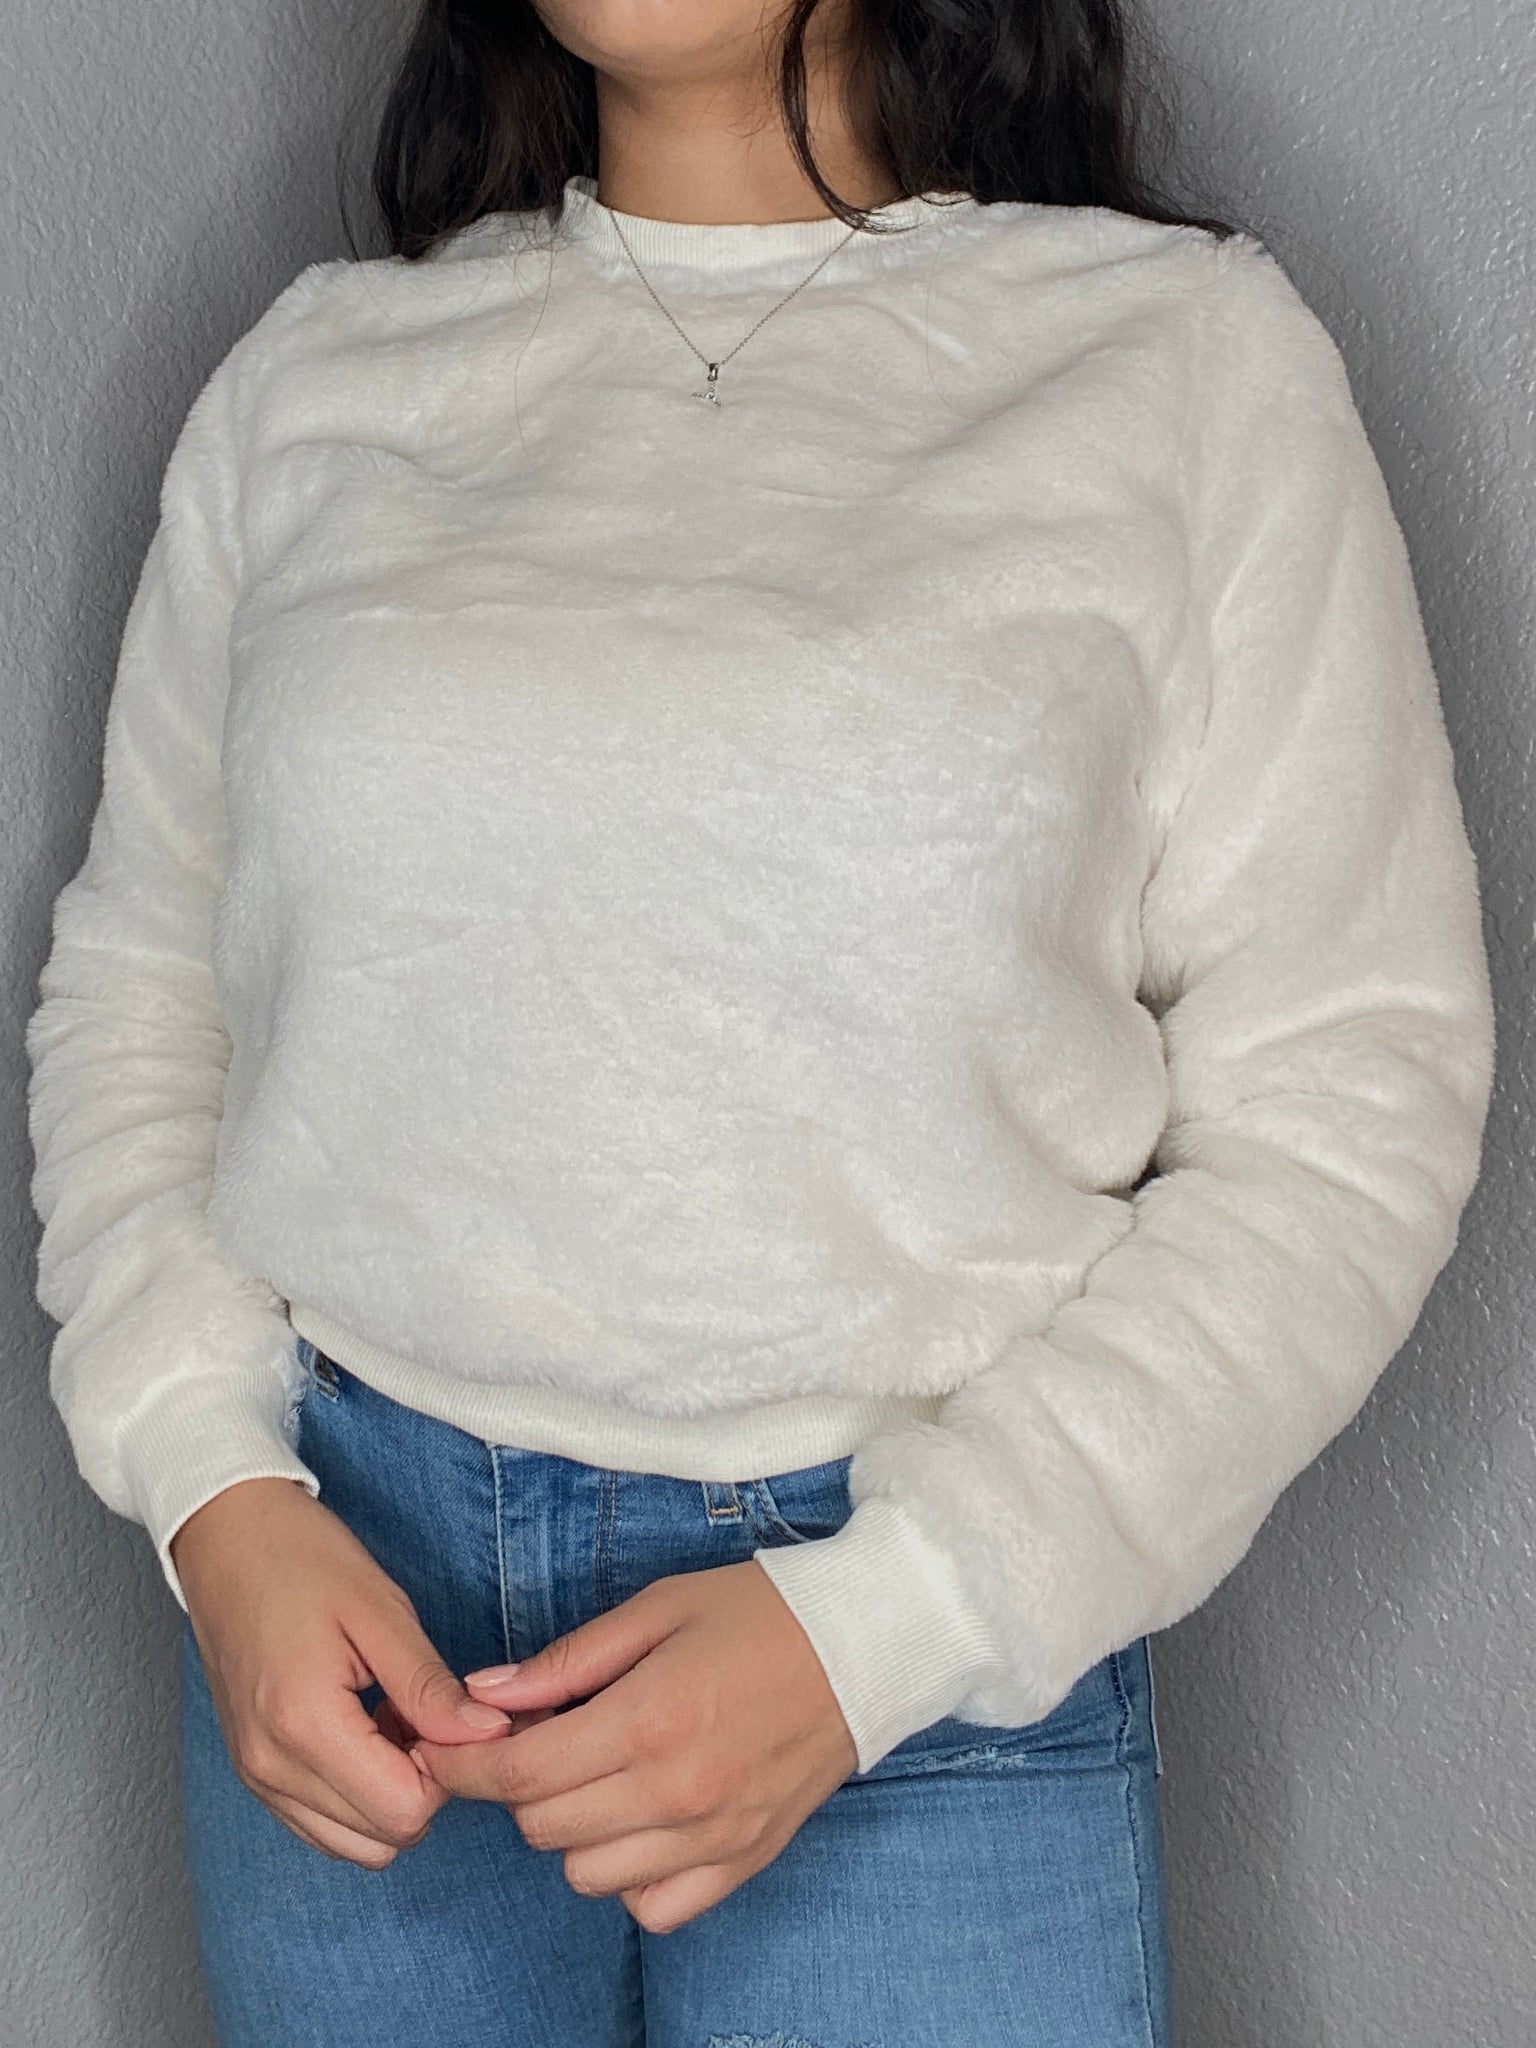 Vanilla Cream Sweater Top